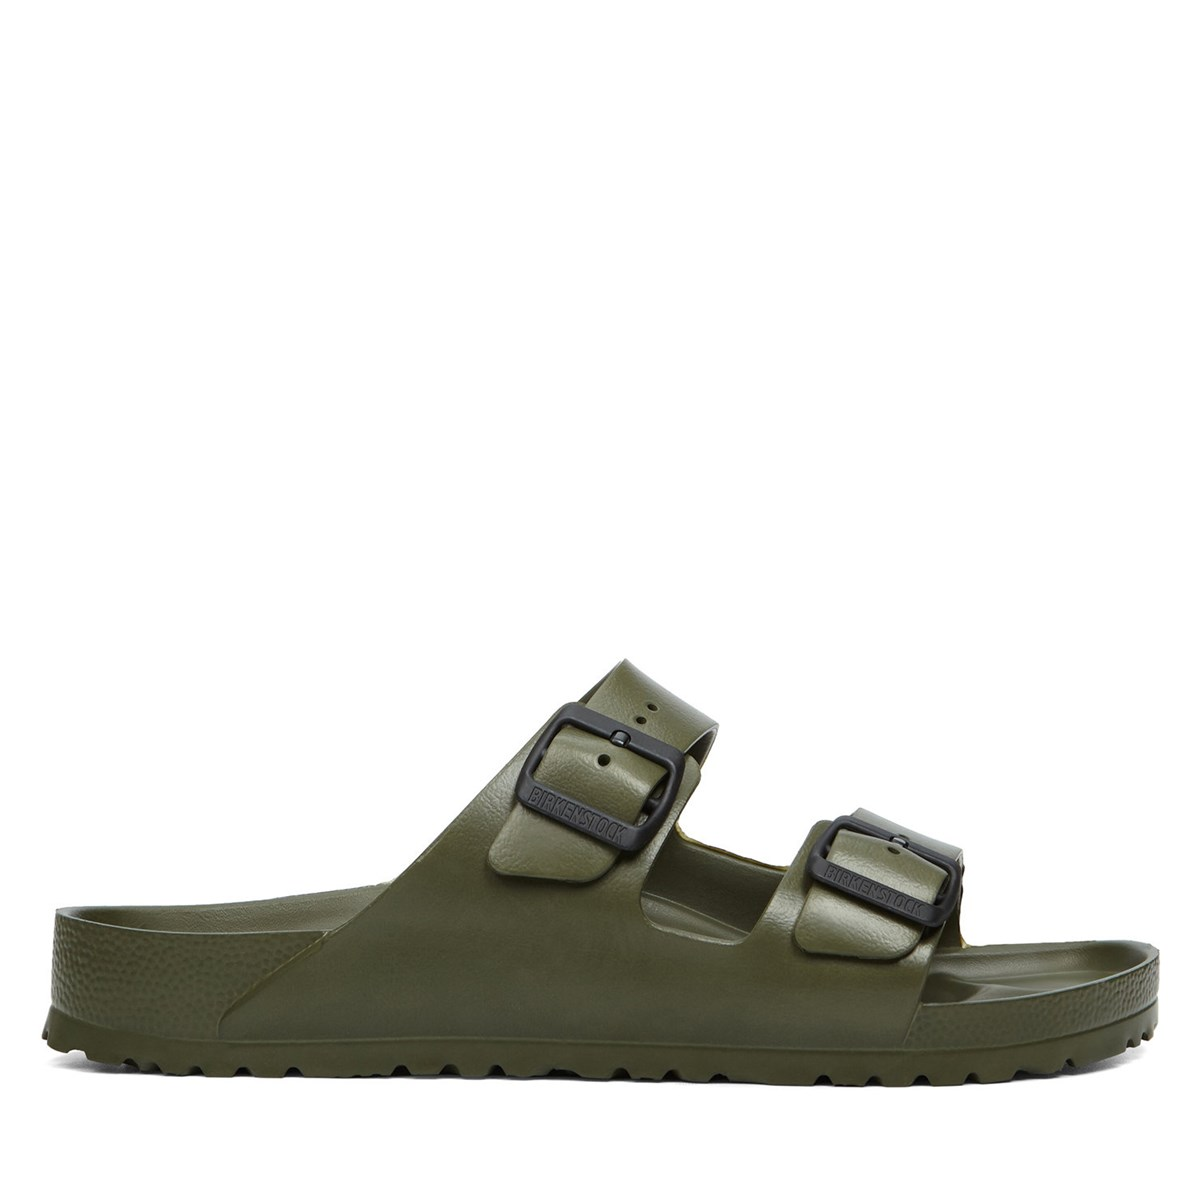 Men's Arizona EVA Sandals in Khaki